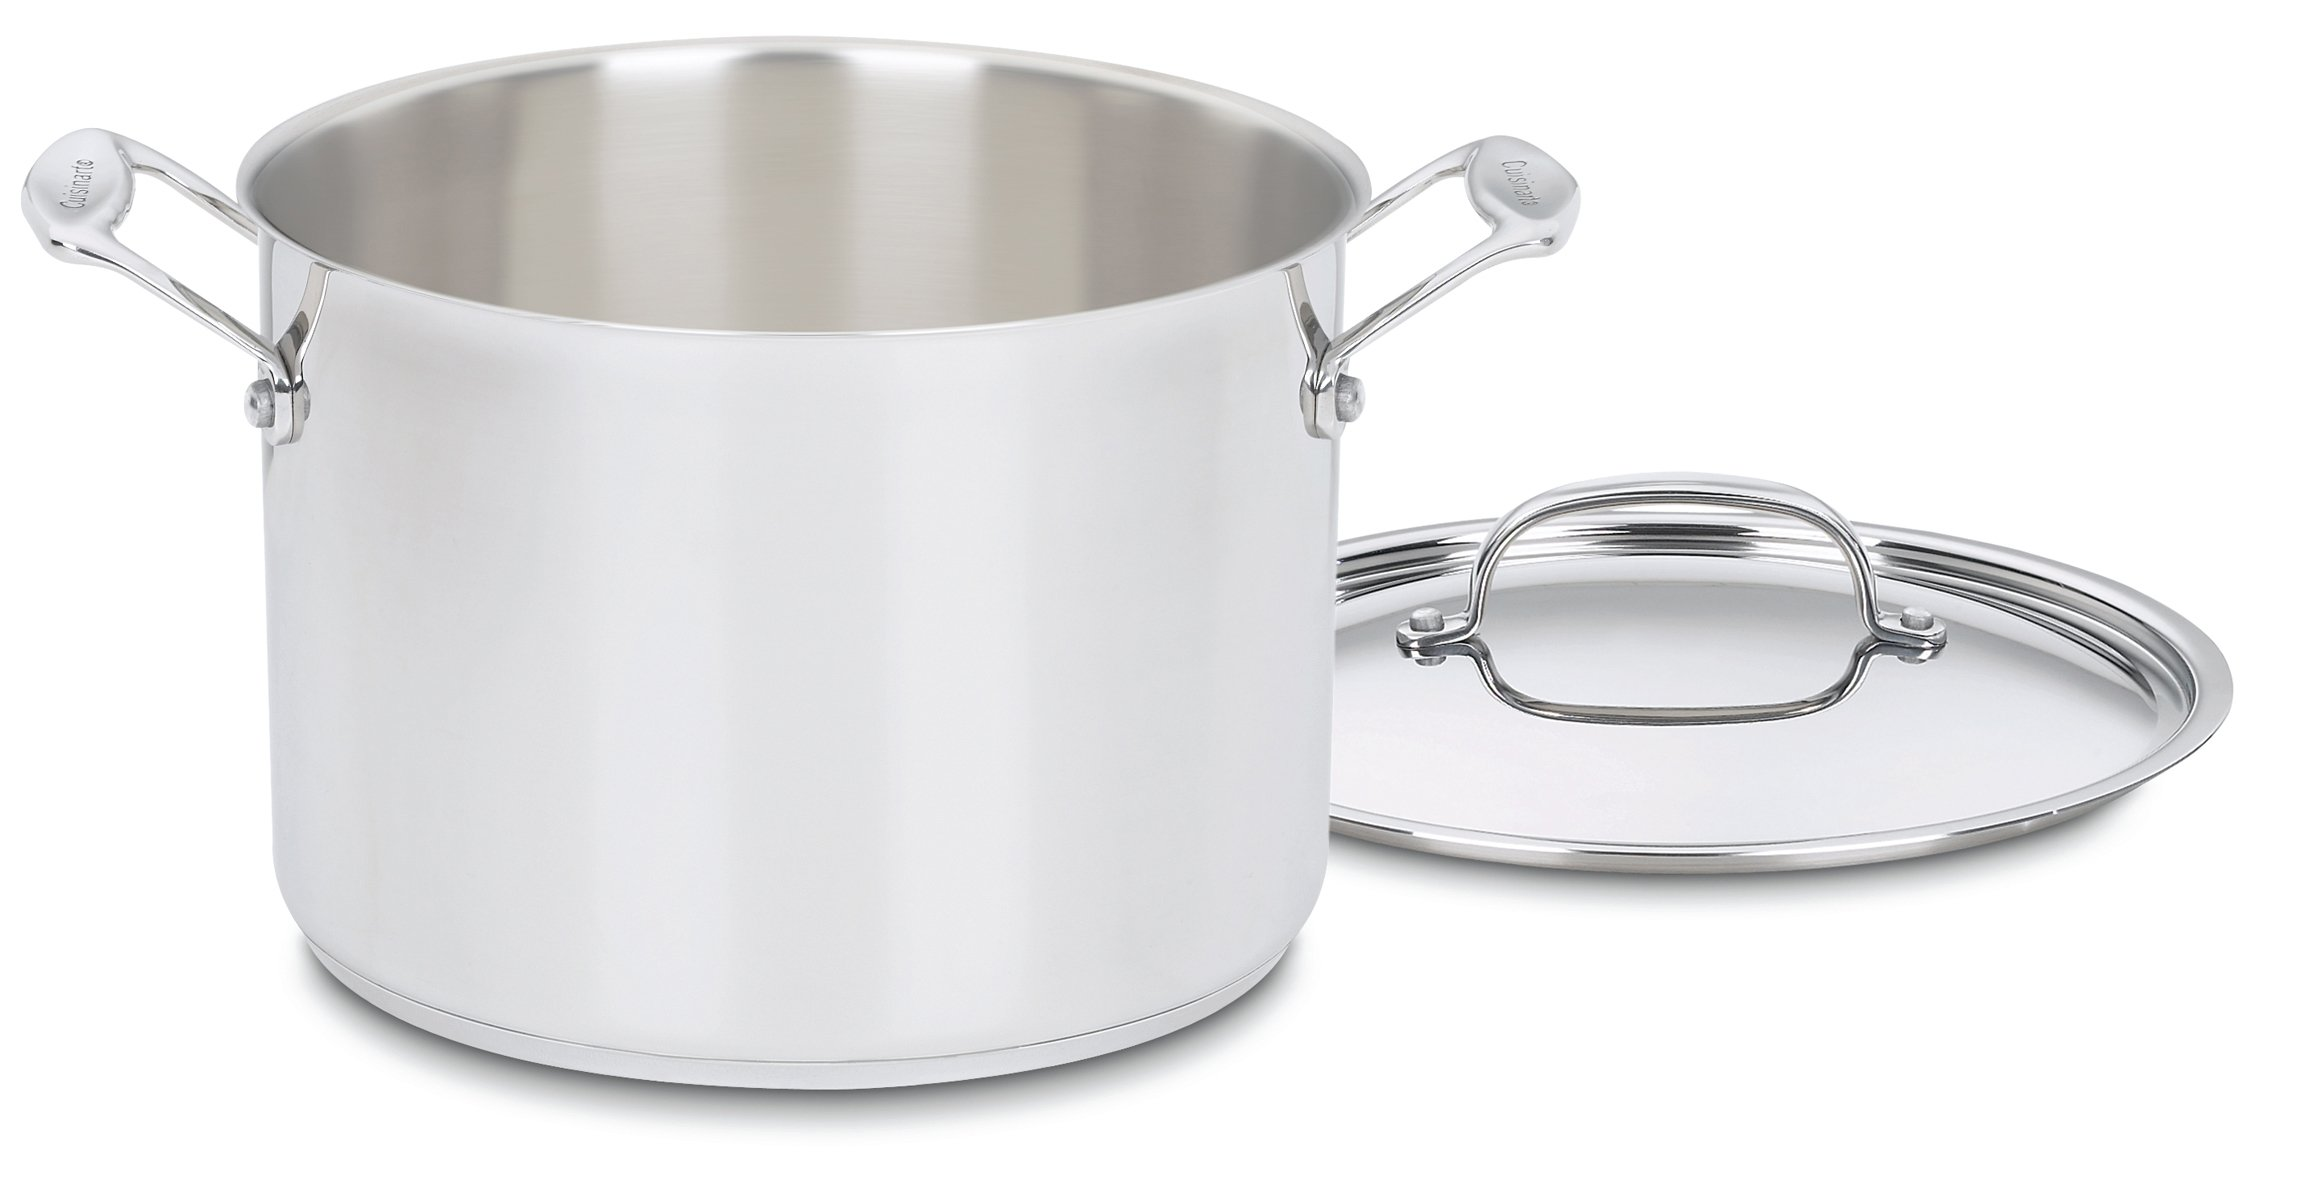 Cuisinart 766-24 Chef's Classic 8-Quart Stockpot with Cover by Cuisinart